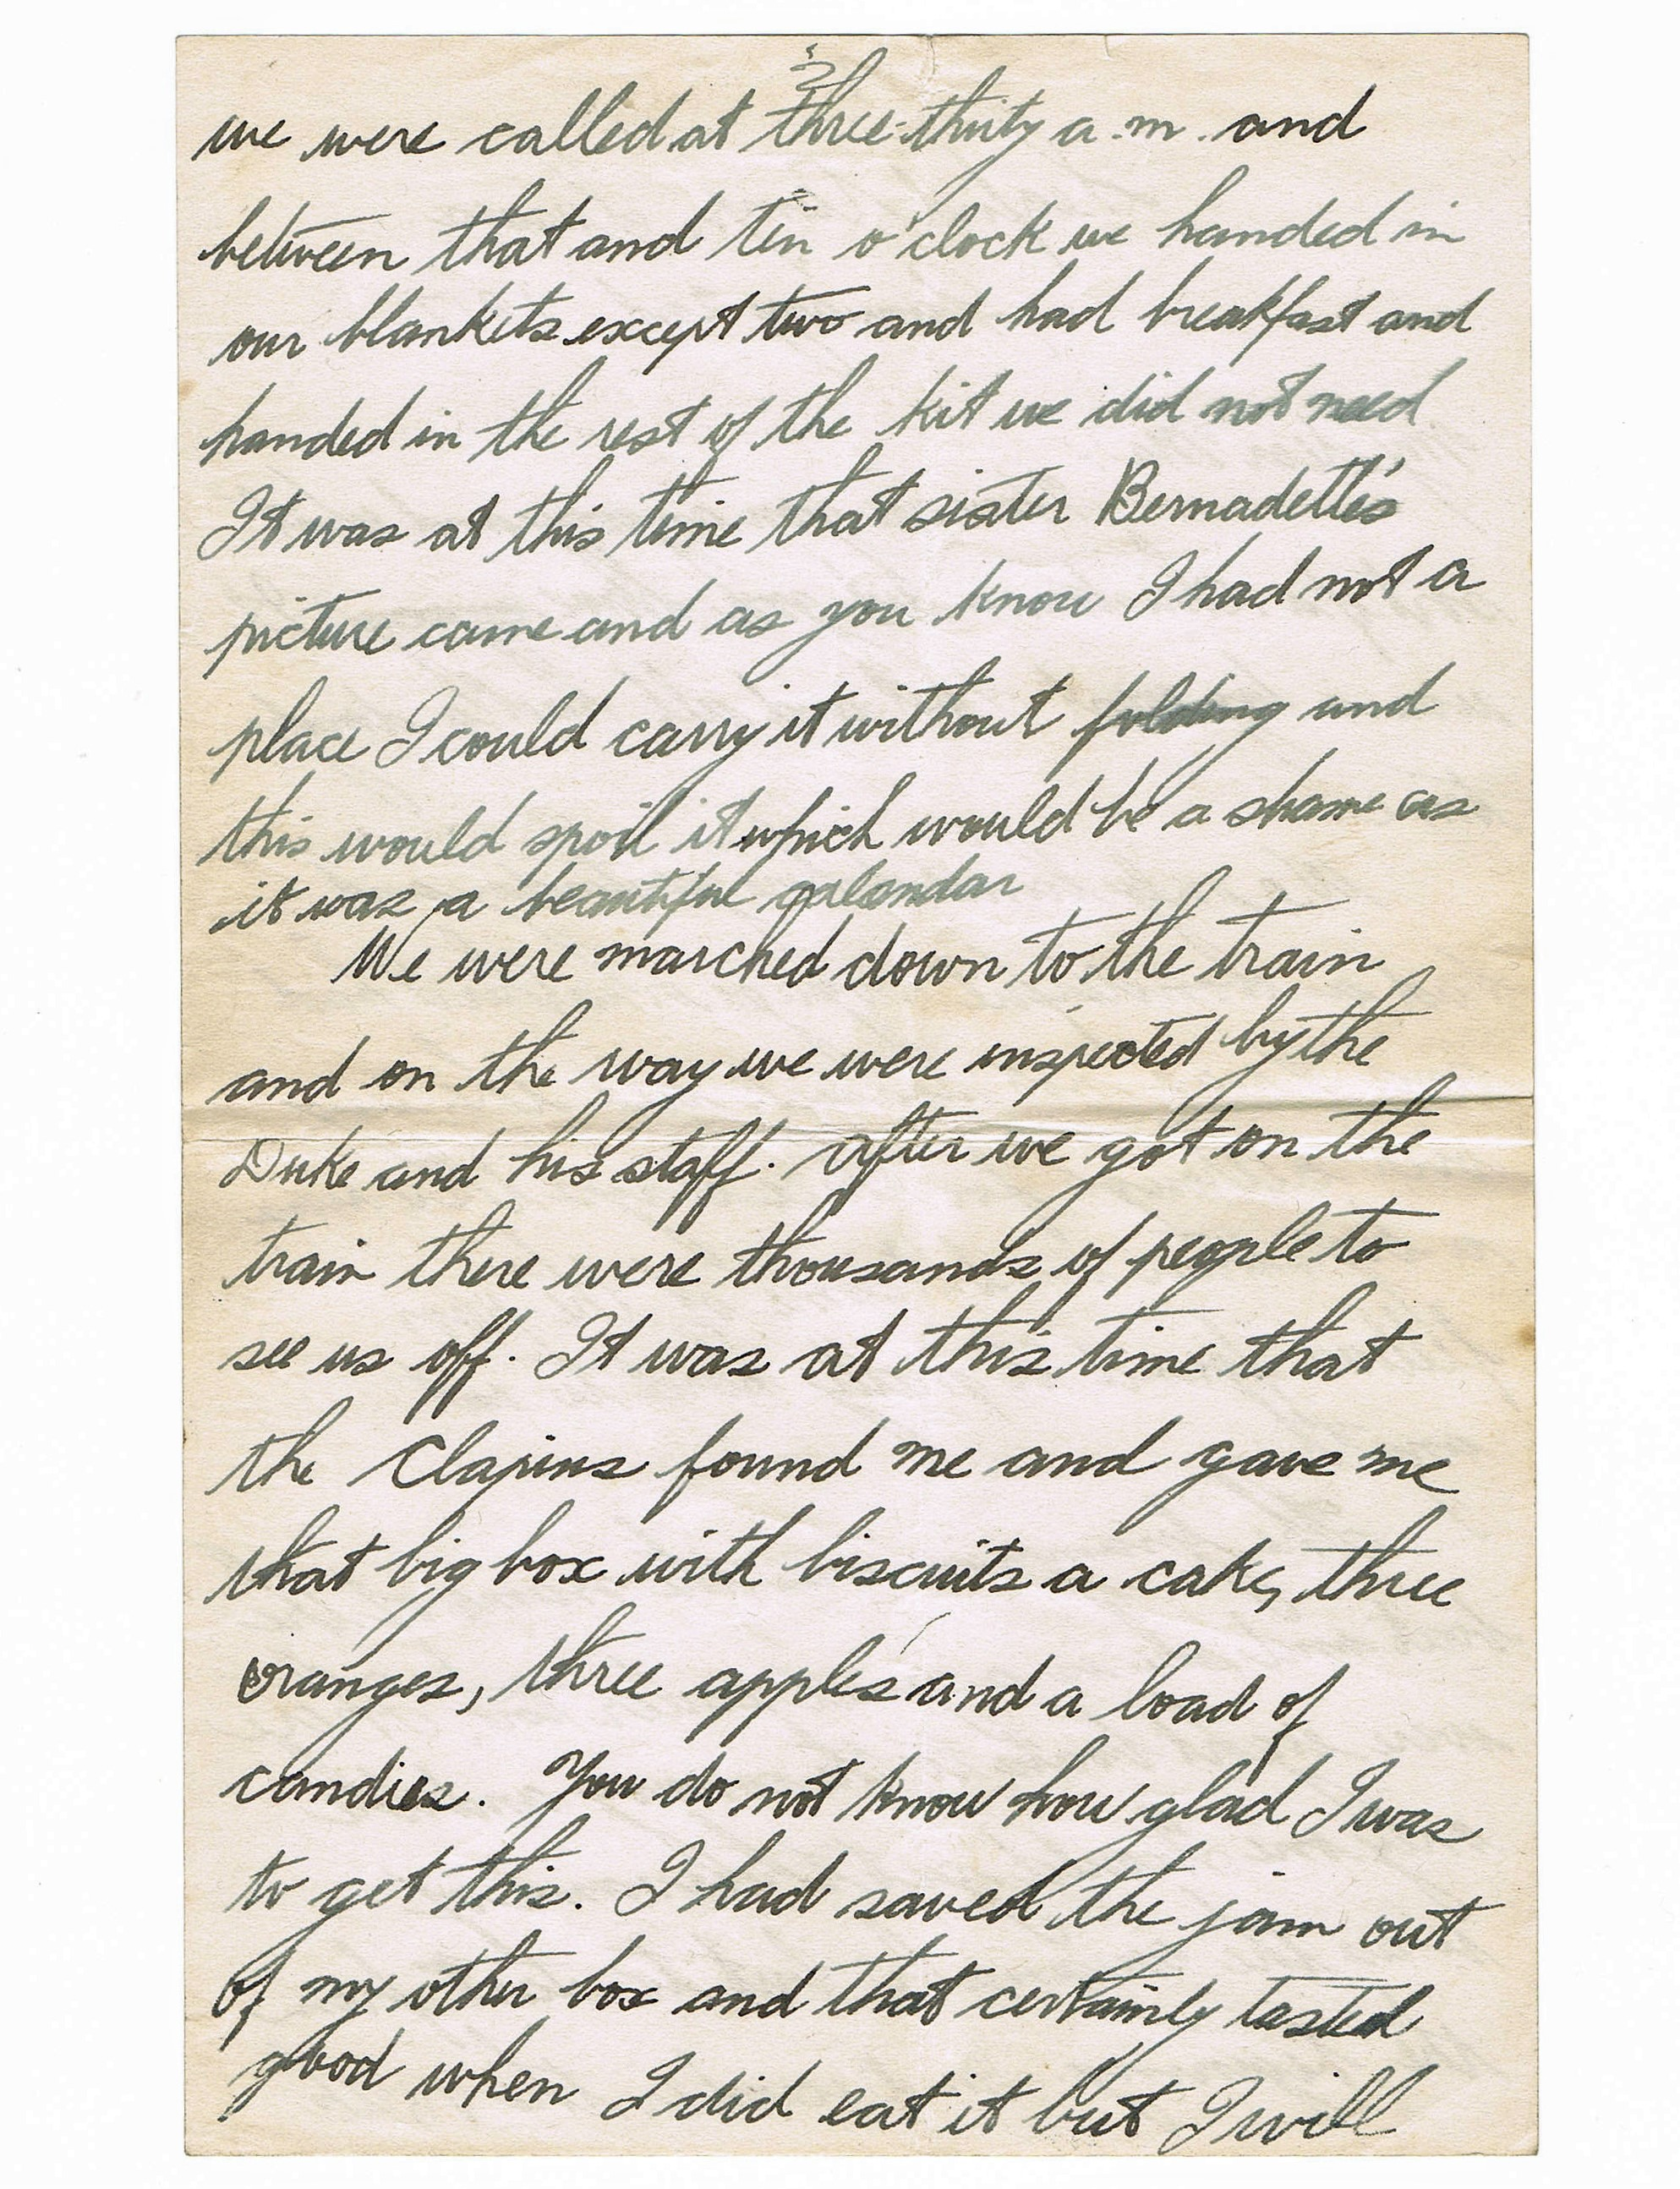 Second page of handwritten letter